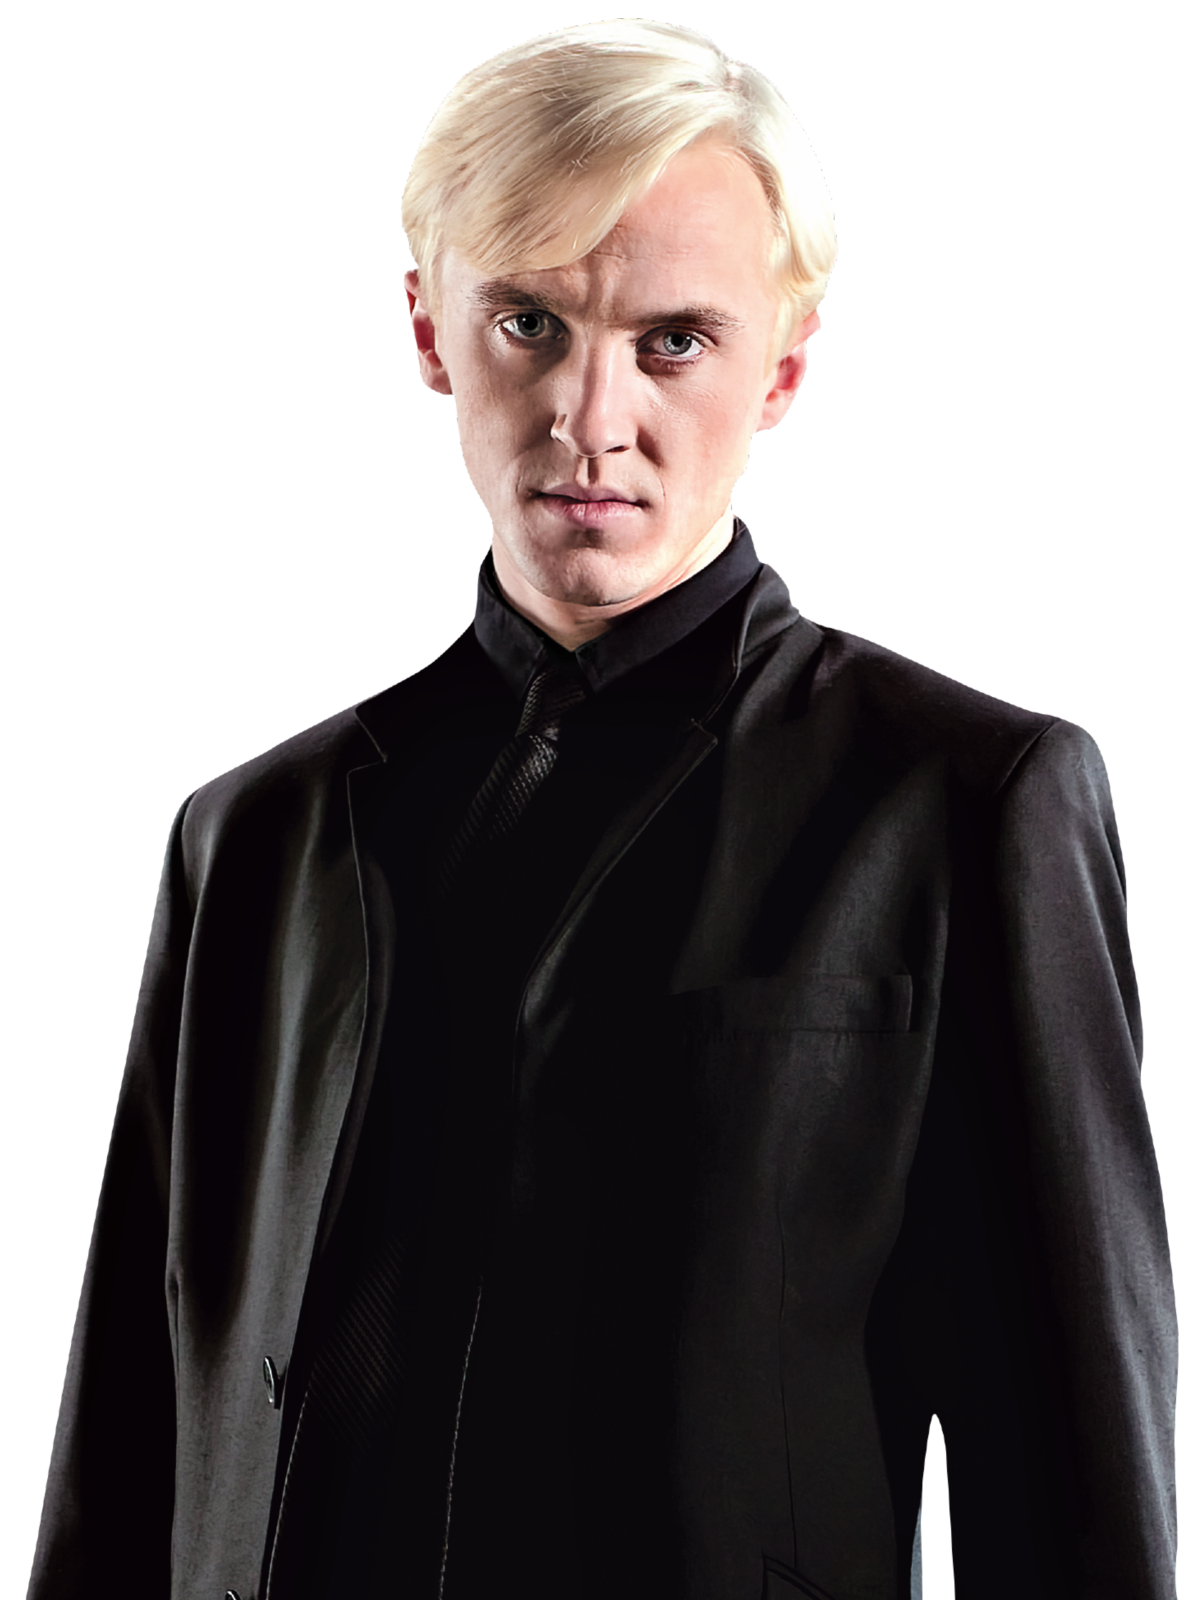 Draco Malfoy | Harry Potter Wiki | FANDOM powered by Wikia